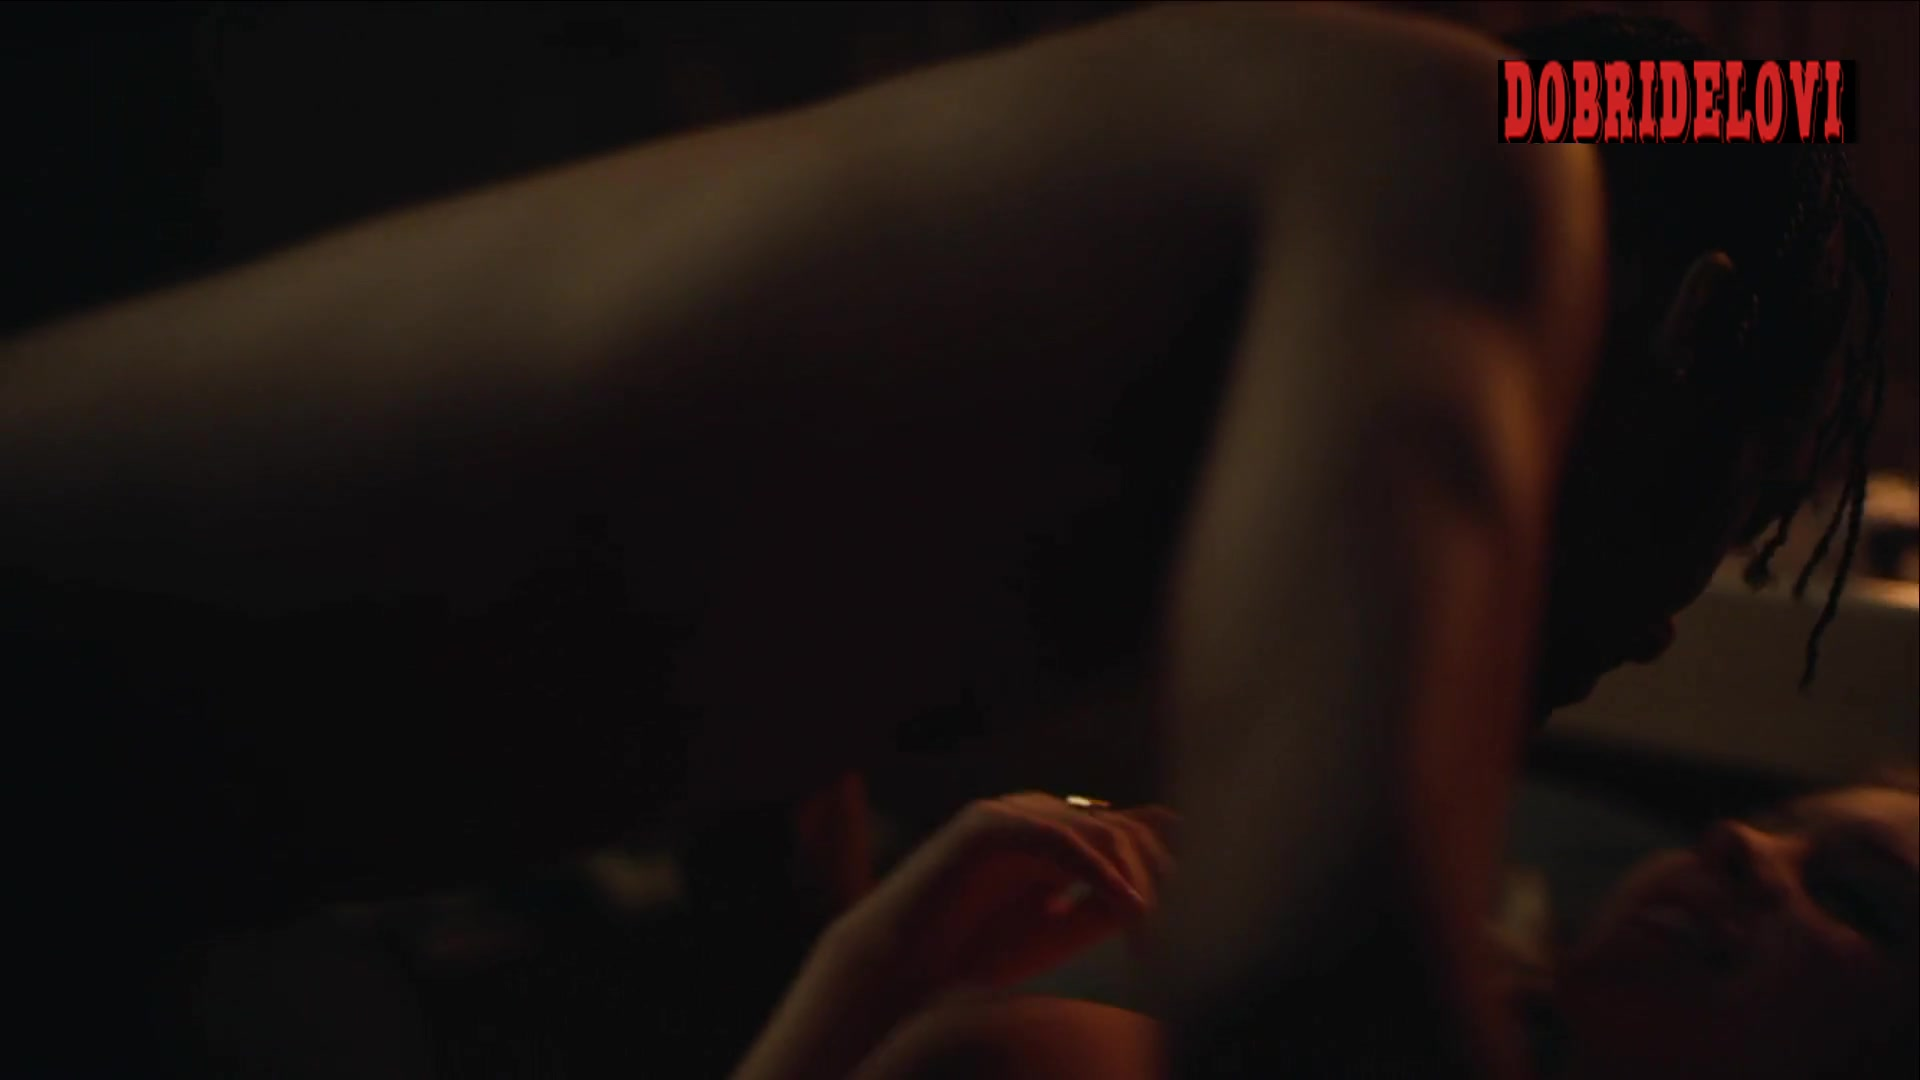 Sydney Sweeney takes off her bra scene in Euphoria